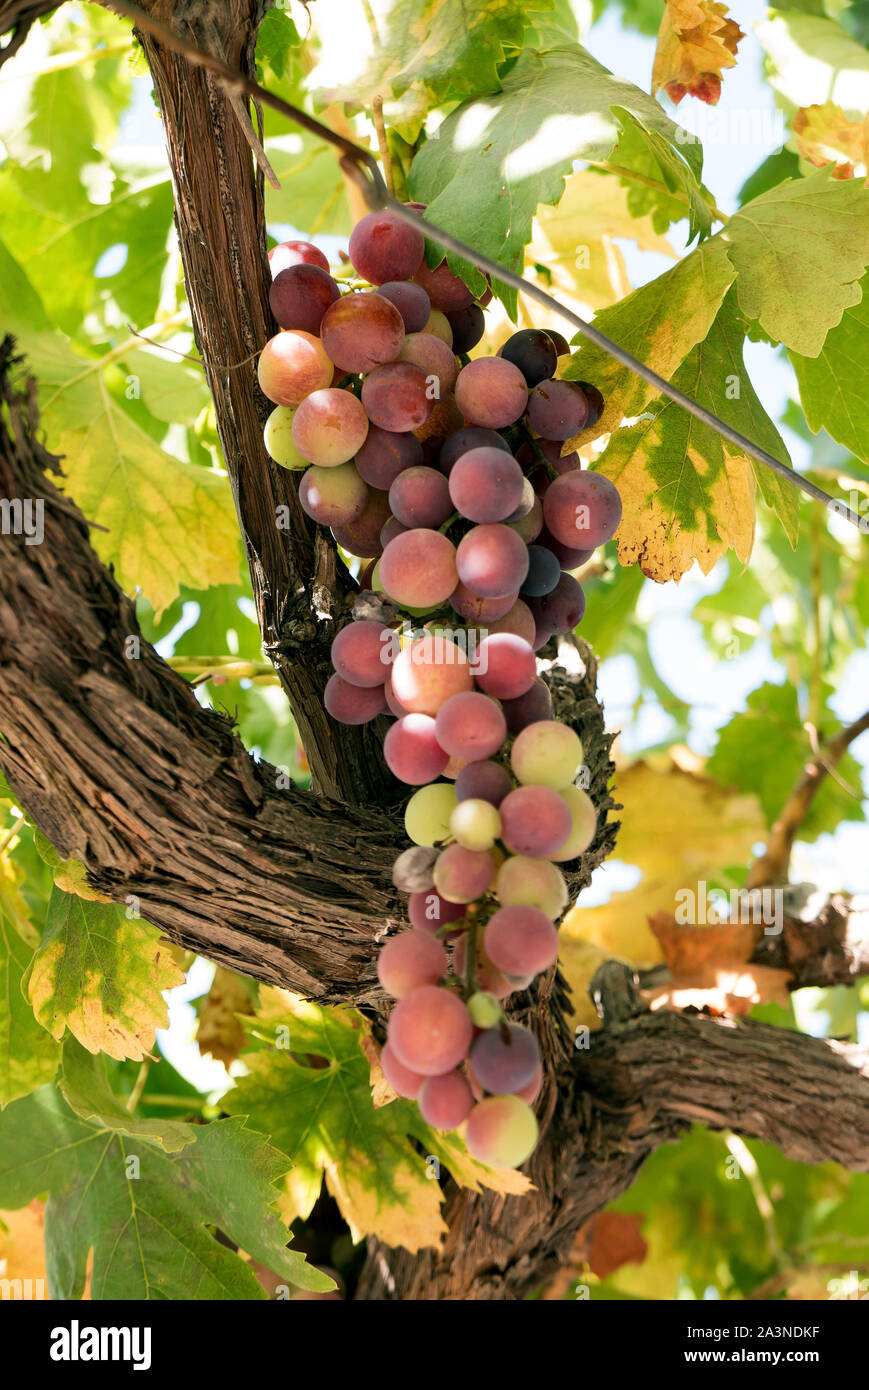 Bunch of  Grapes on the vine Stock Photo